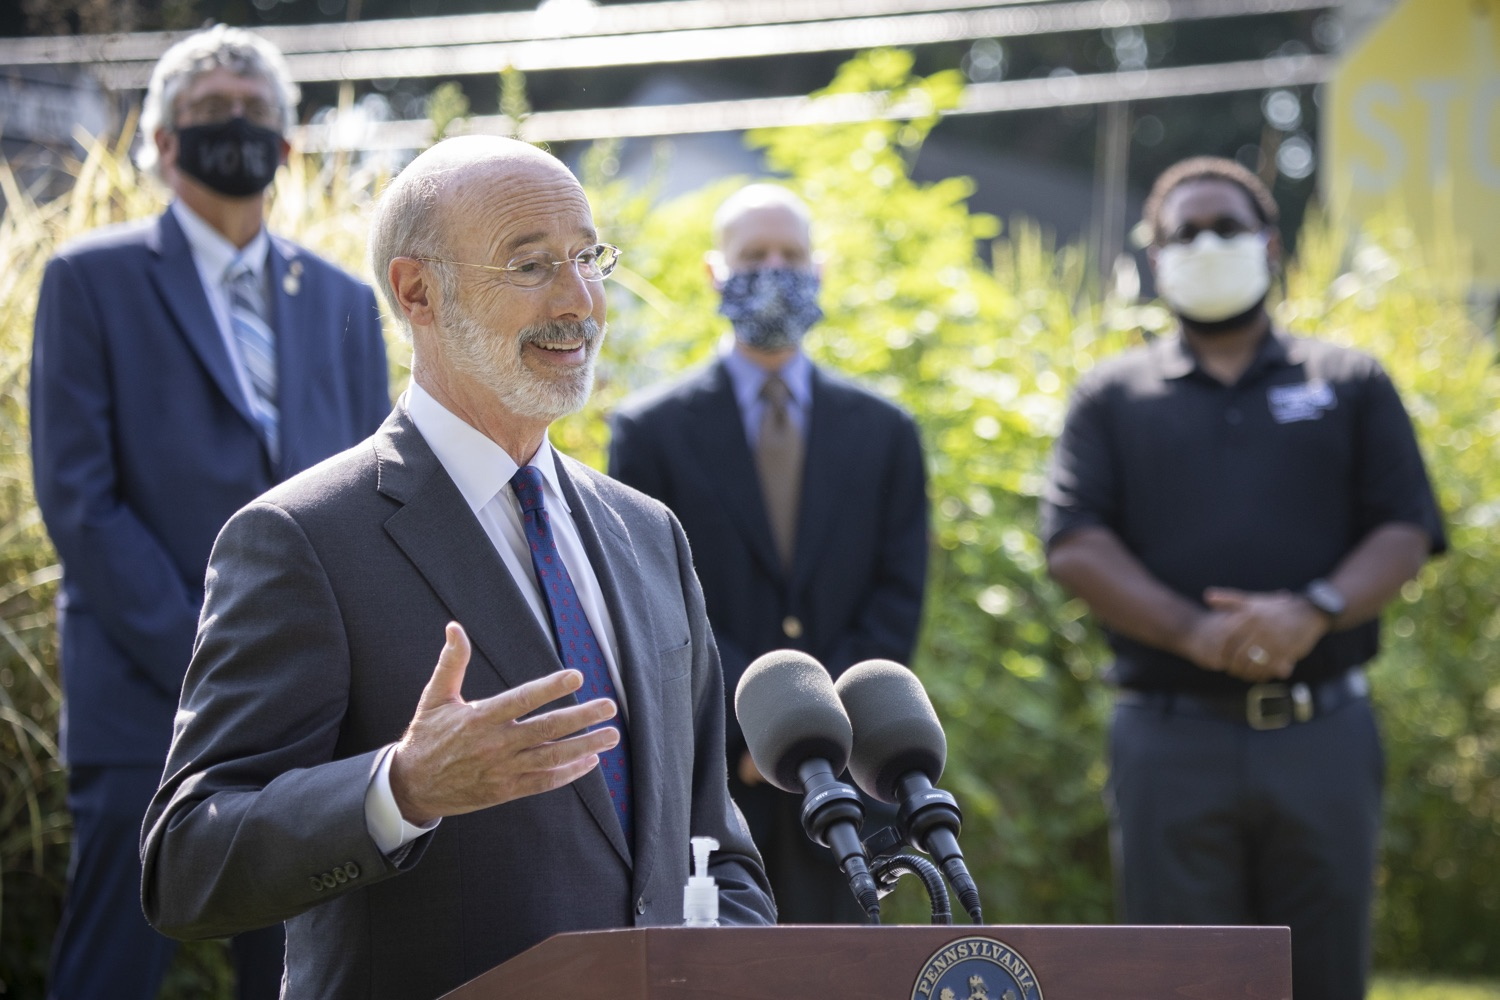 "<a href=""https://filesource.wostreaming.net/commonwealthofpa/photo/18248_gov_evictions_dz_043.jpg"" target=""_blank"">⇣ Download Photo<br></a>Pennsylvania Governor Tom Wolf speaking to the press. With rent and mortgage debt mounting for hundreds of thousands of Pennsylvanians, Governor Tom Wolf is calling on the General Assembly to fix a state relief program to prevent many families from becoming homeless and enact a moratorium on evictions and foreclosures until the end of the year. The governor was joined today by legislators and housing advocates at a press conference in Lancaster County. Harrisburg, PA  Sept. 8, 2020"